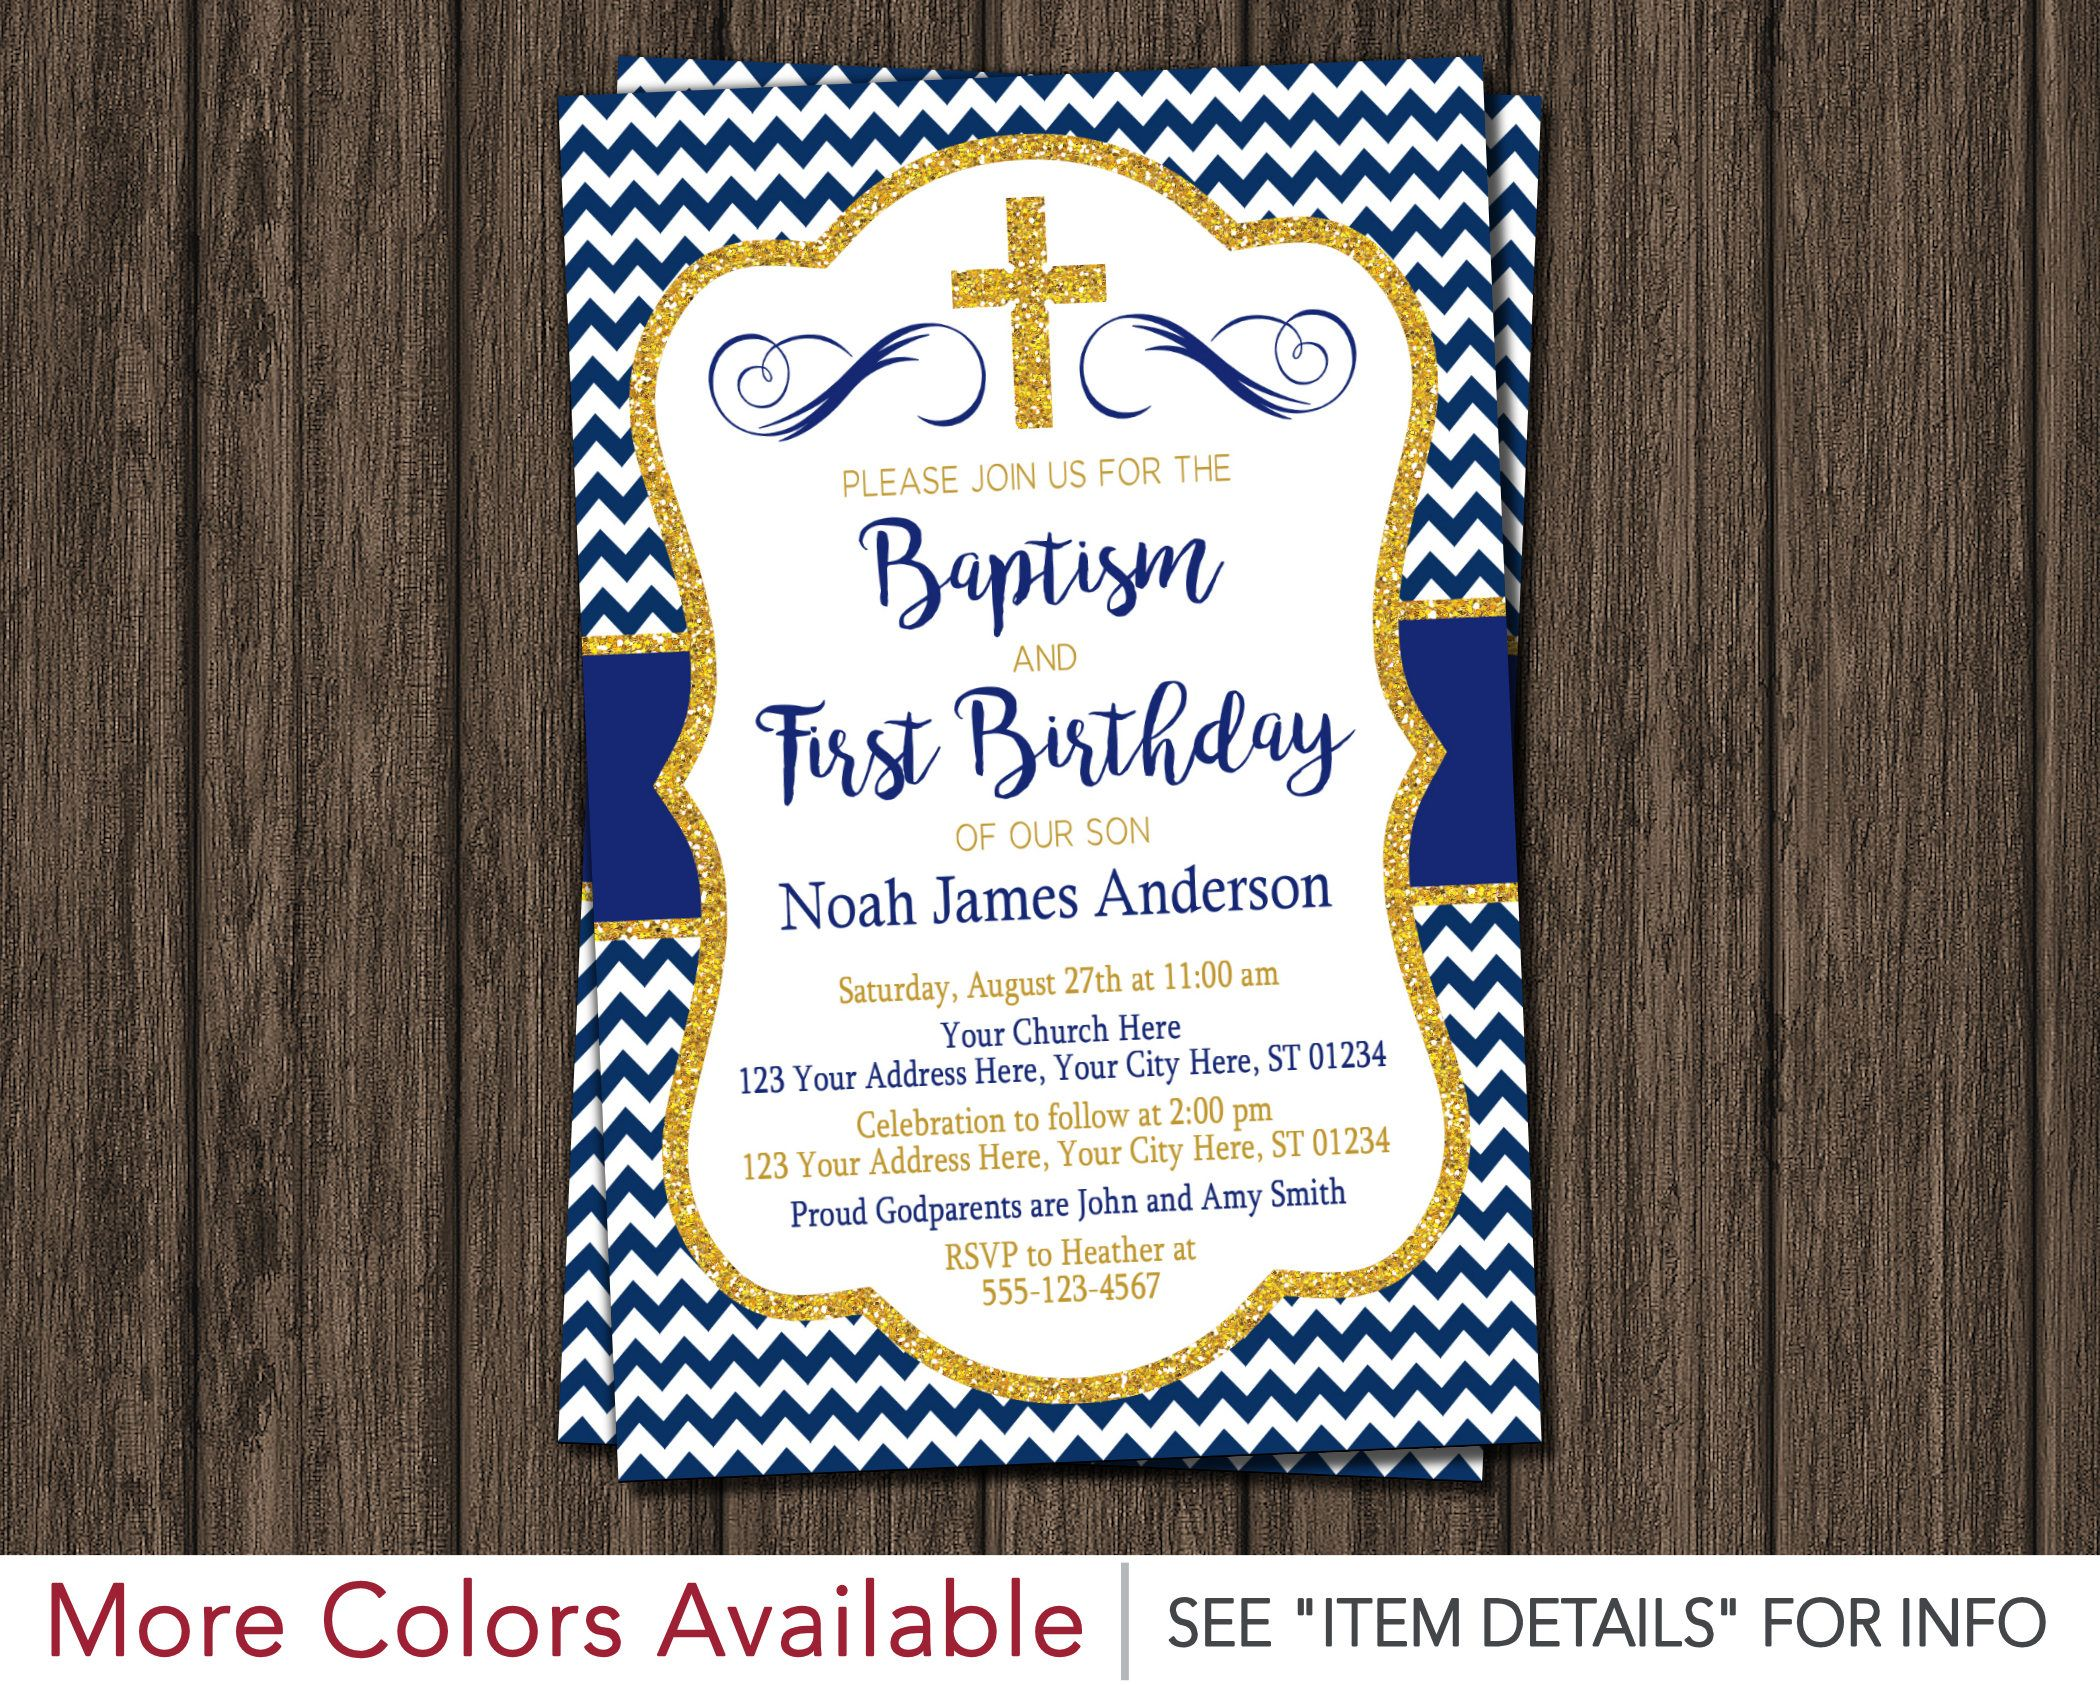 Royal Blue And Gold Wedding Invitations: Royal Blue White Silver Cross Baptism Invitation Wedding